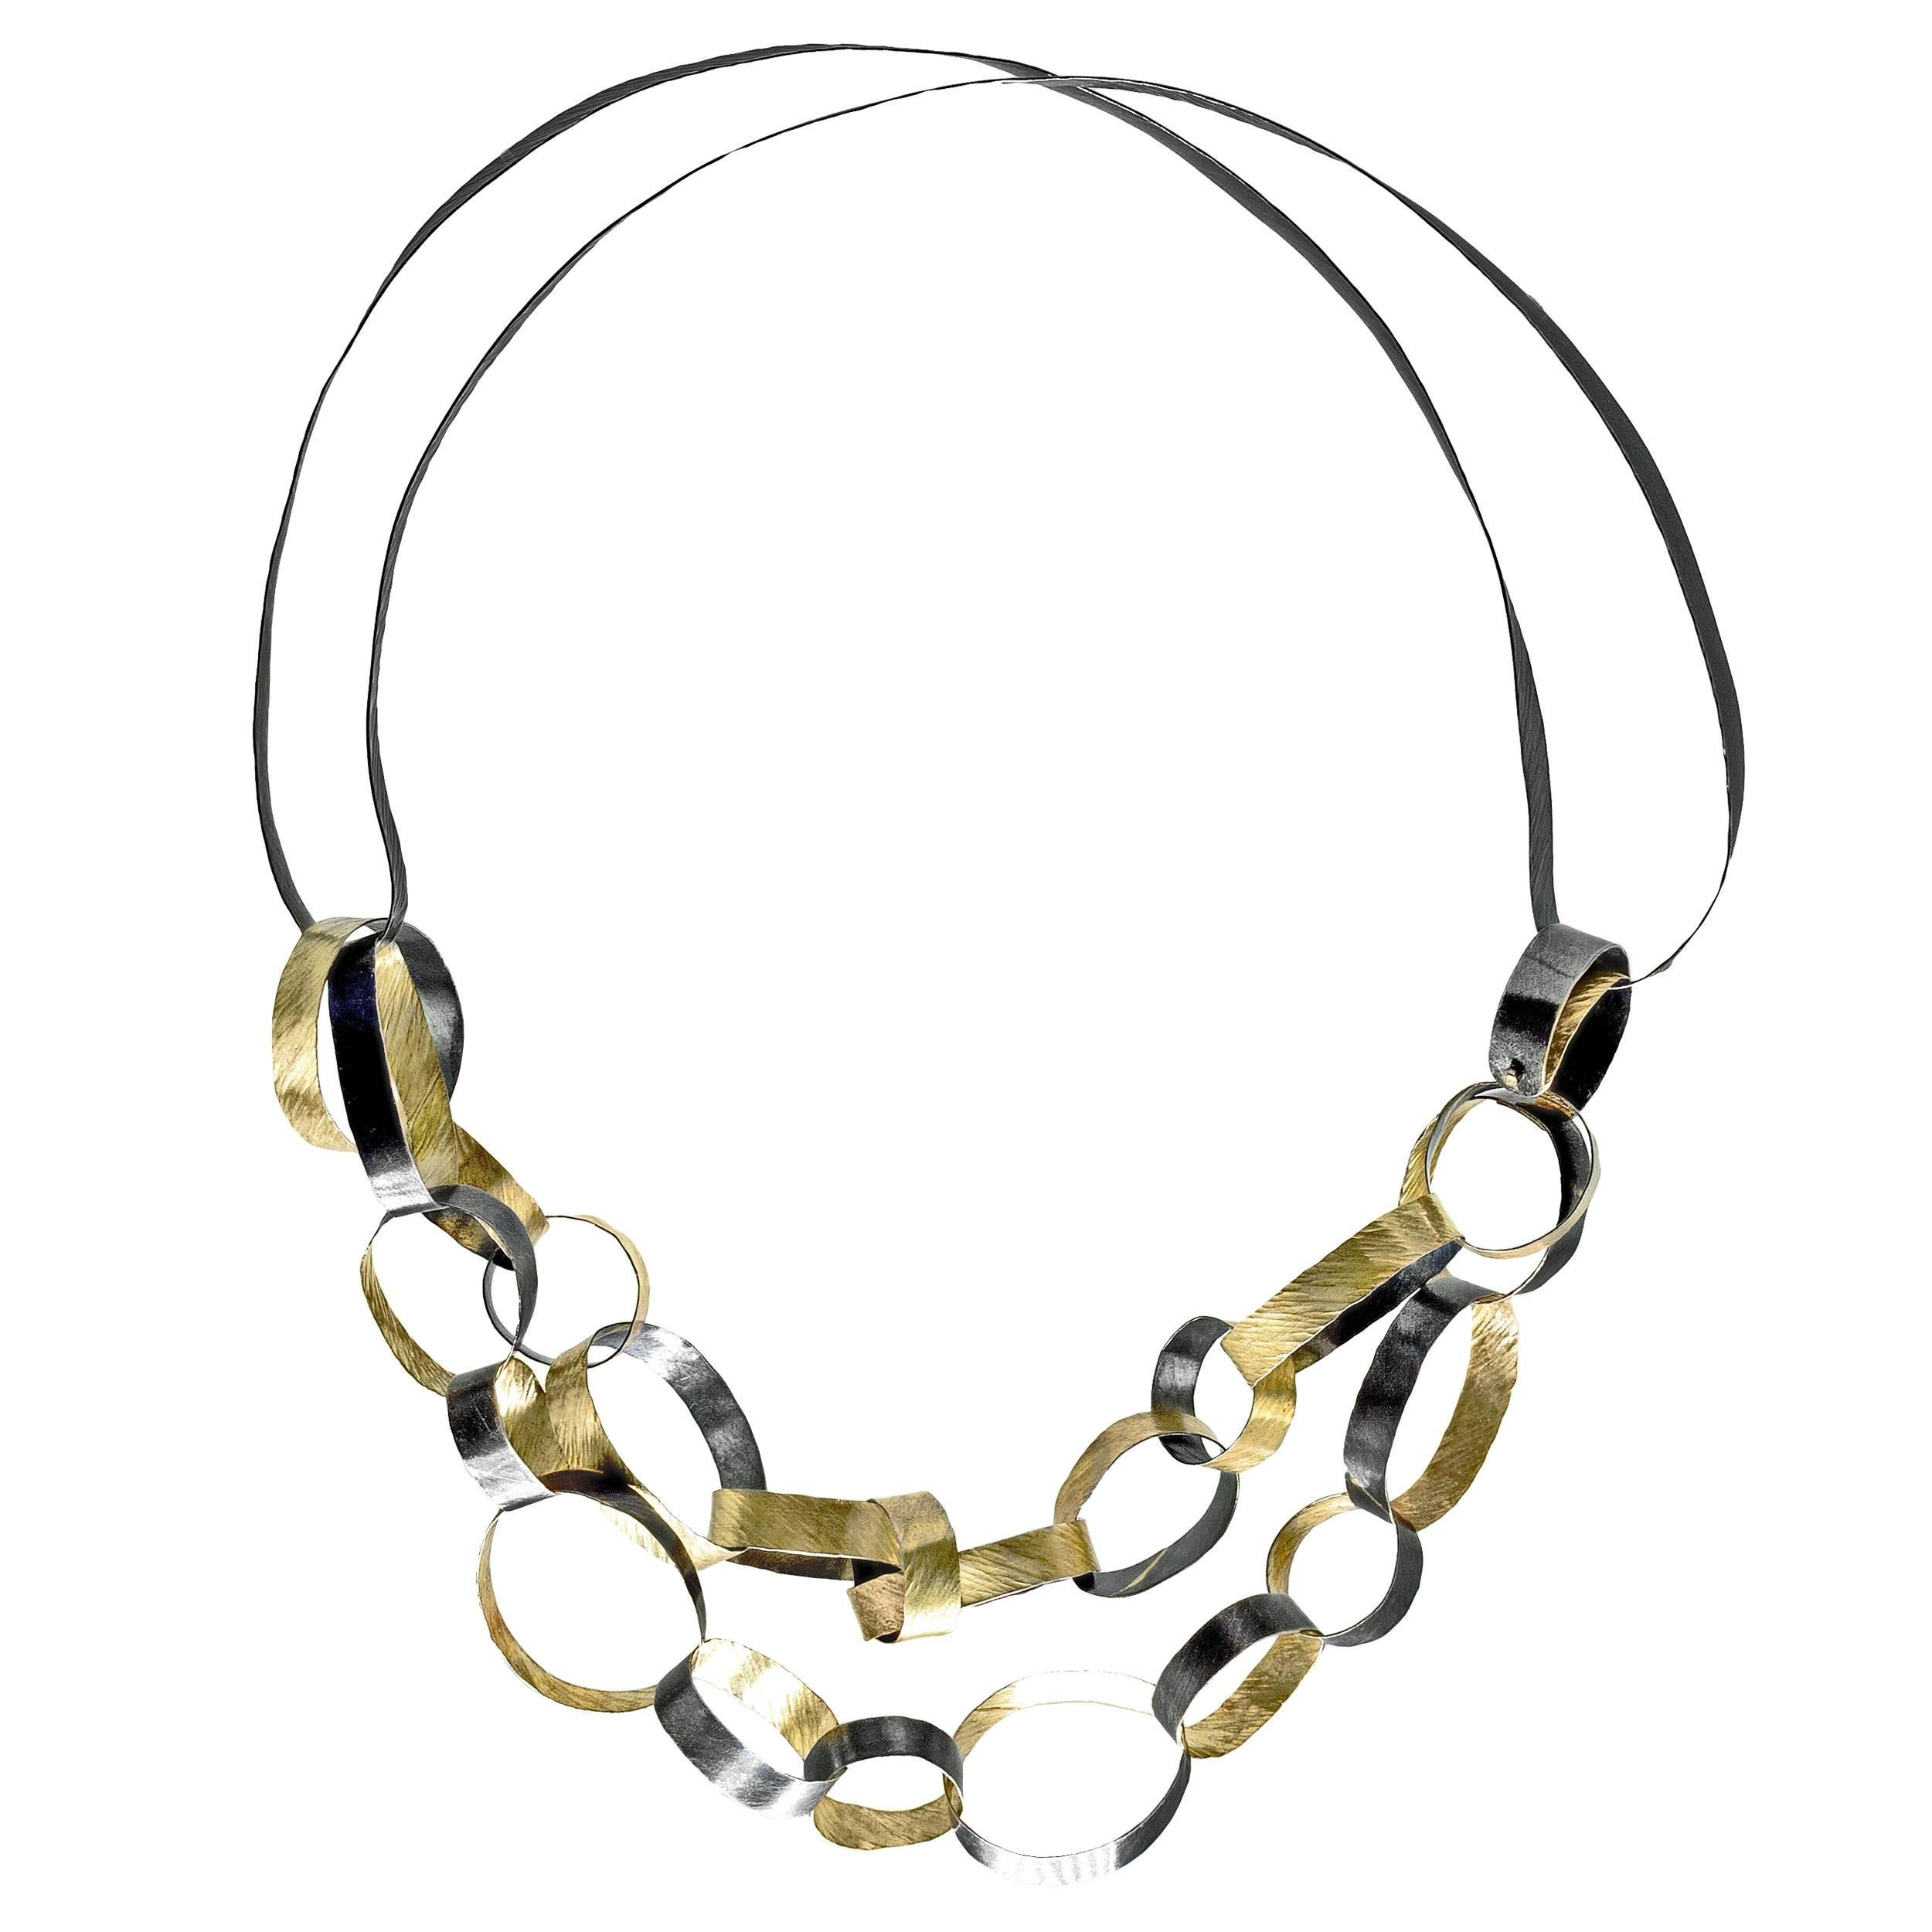 Reiko Ishiyama Yellow Gold Oxidized Silver Contemporary Linked Rings Necklace